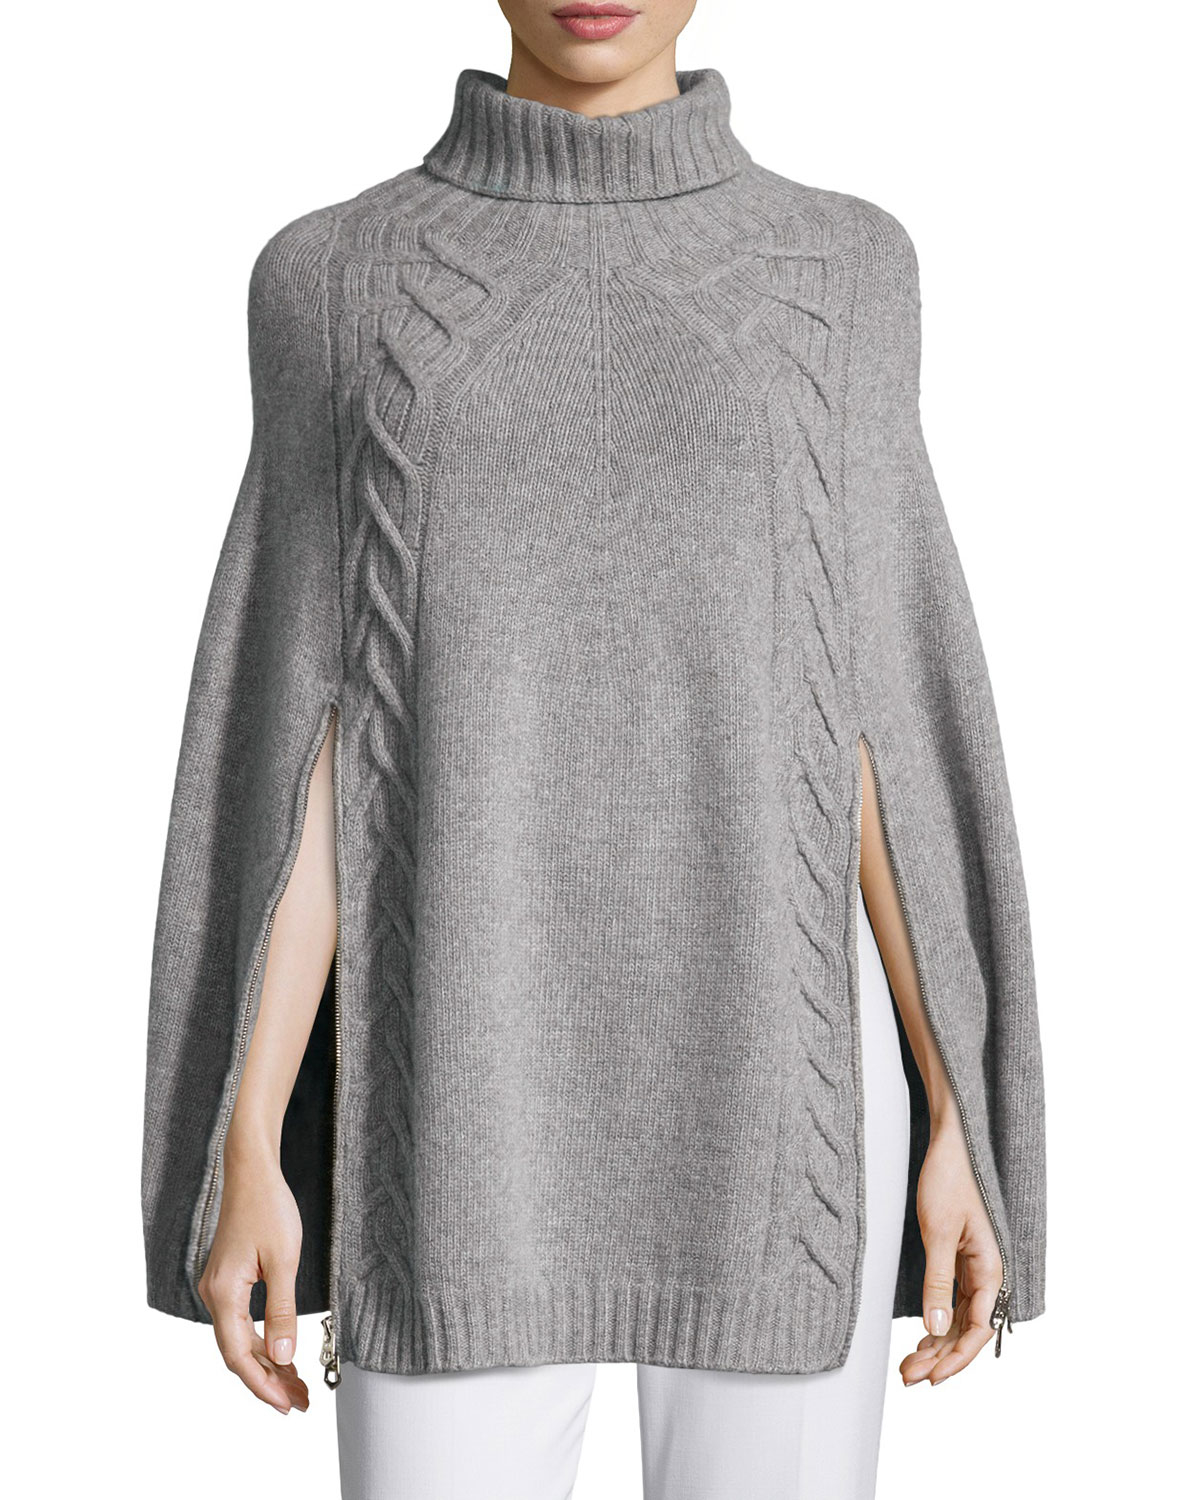 Knitting Pattern For Mens Poncho : Agnona Double-zip Knit Poncho in Gray - Save 46% Lyst